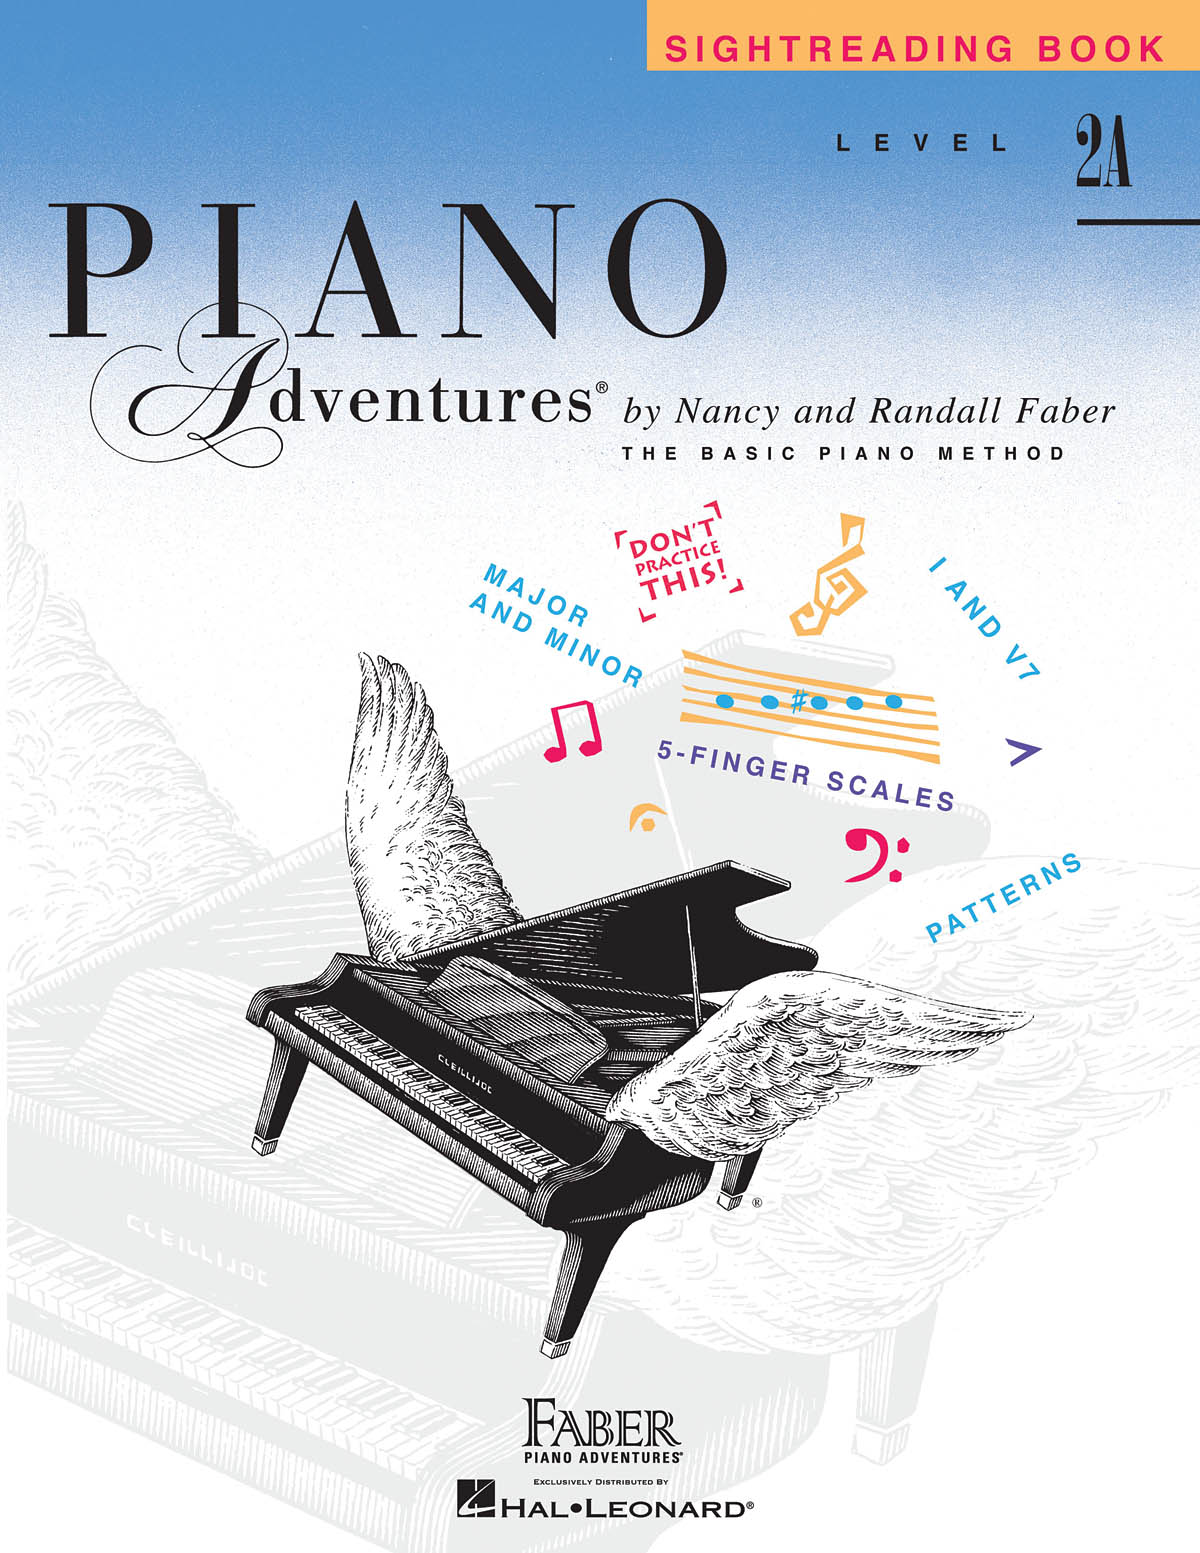 Faber Piano Adventures, Sightreading Book, Level 2A